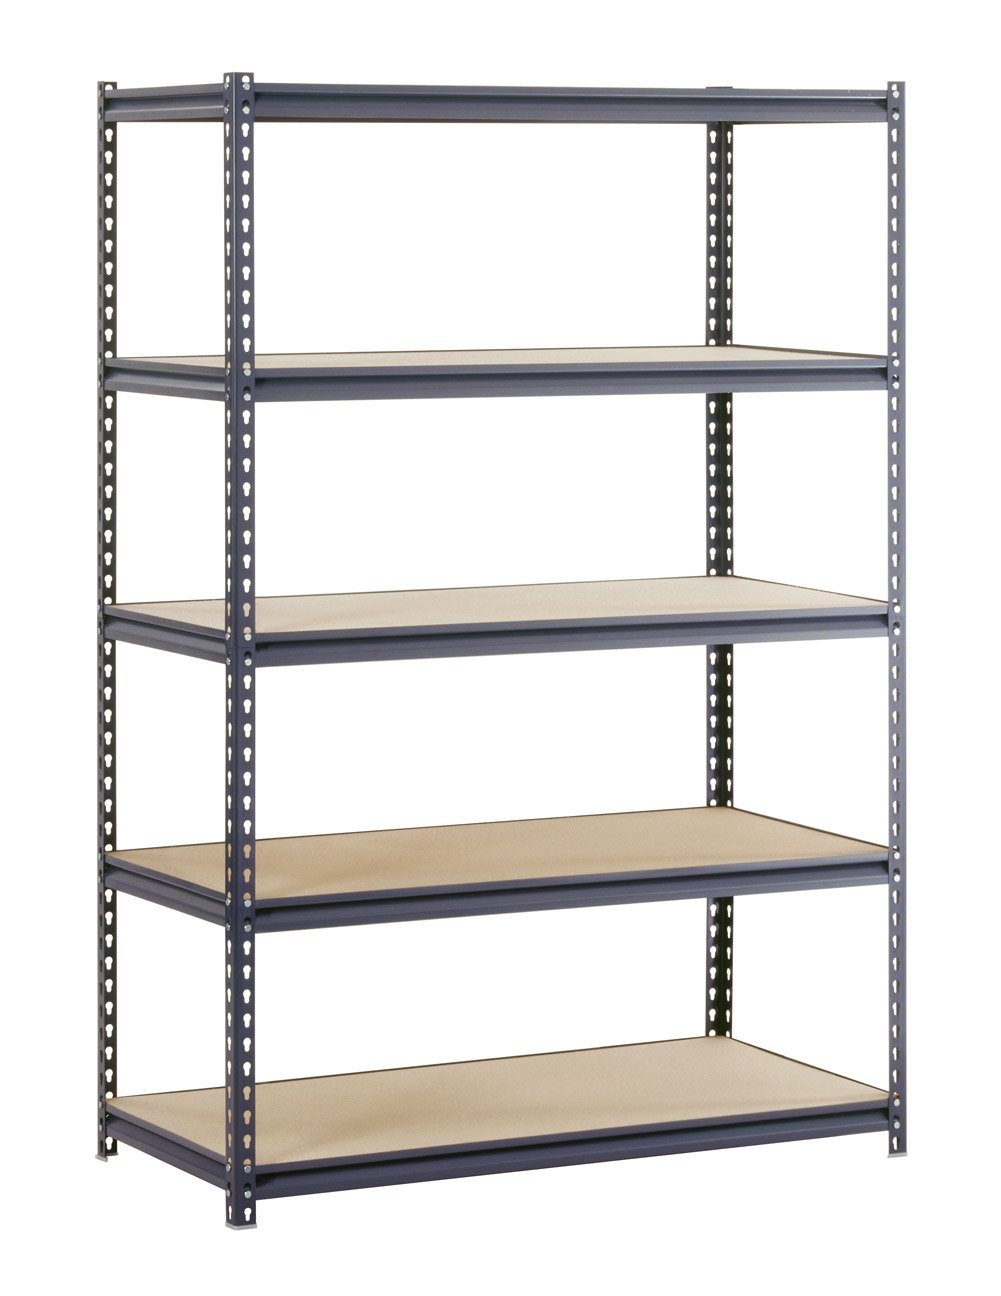 metal storage shelves. amazon.com: edsal ur1848 industrial gray heavy duty steel boltless shelving storage rack, 1000 capacity, 48\ metal shelves